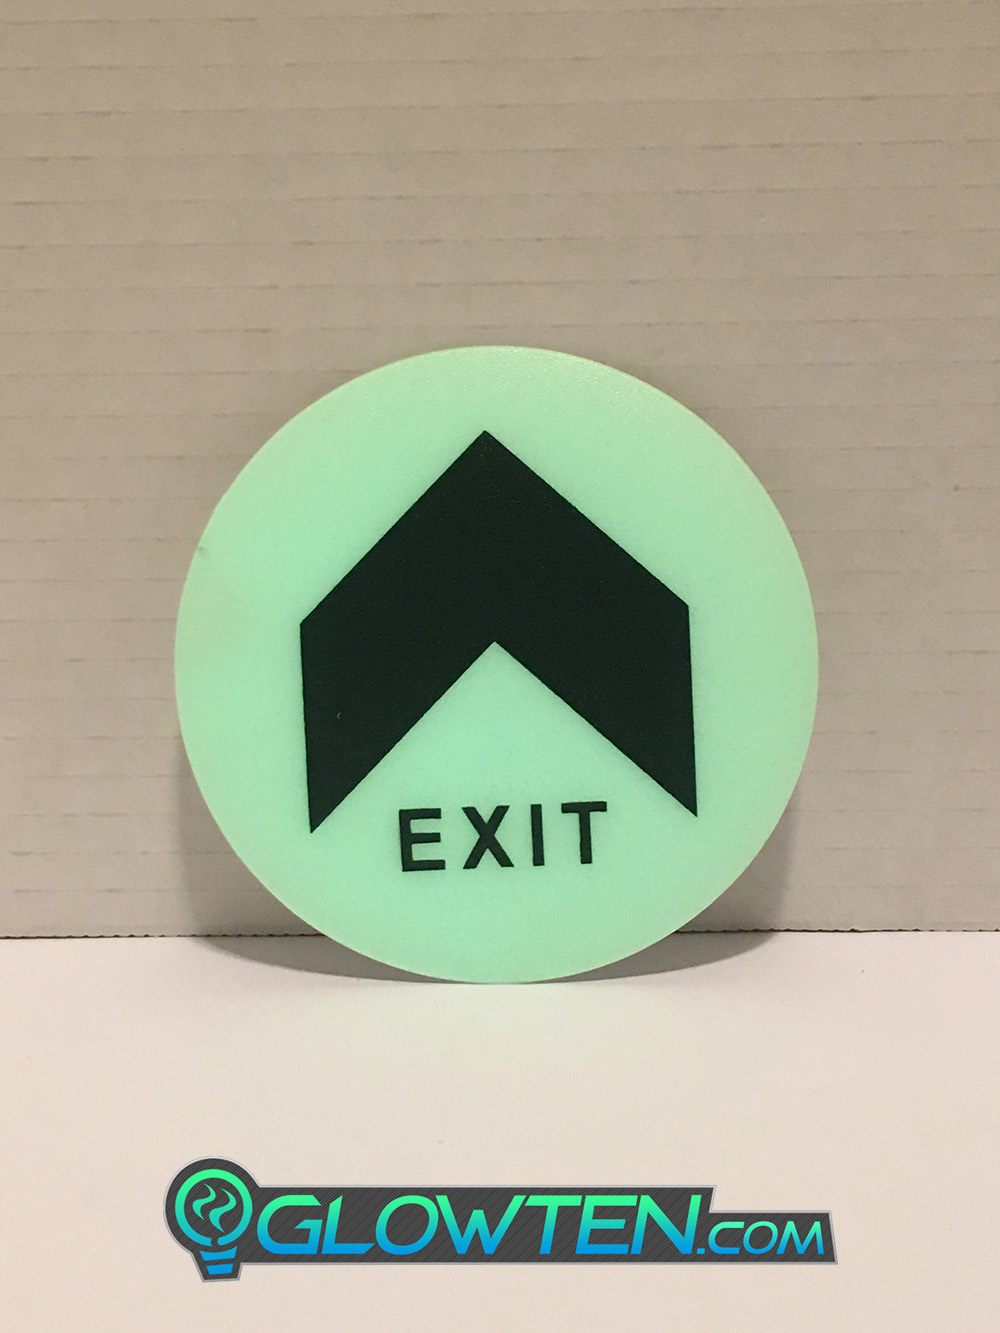 GLOWTEN.com - Glow In The Dark Sign Glows Green Brightly And Is Extremely Visible In Total Darkness Large Arrow Fire Exit Sign Emergency Glow In The Dark Eco Friendly Photoluminescent Pigment Pvc Plastic With Adhesive picture photo cap preview pic image search 1